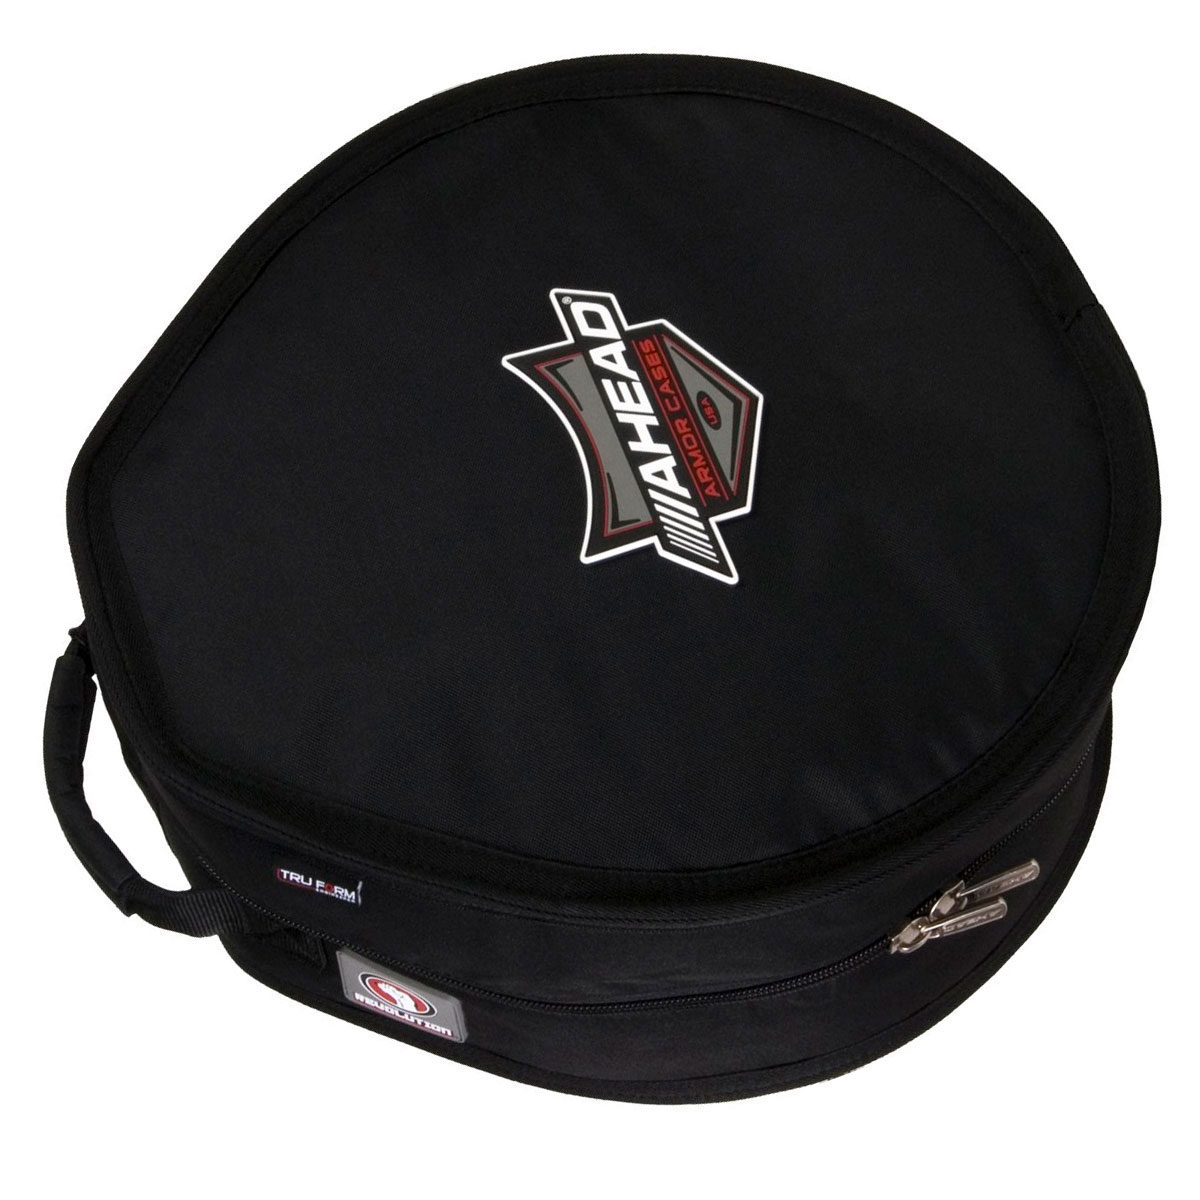 "Ahead Armor 5"" (Deep) x 12"" (Diameter) Piccolo Snare Case"